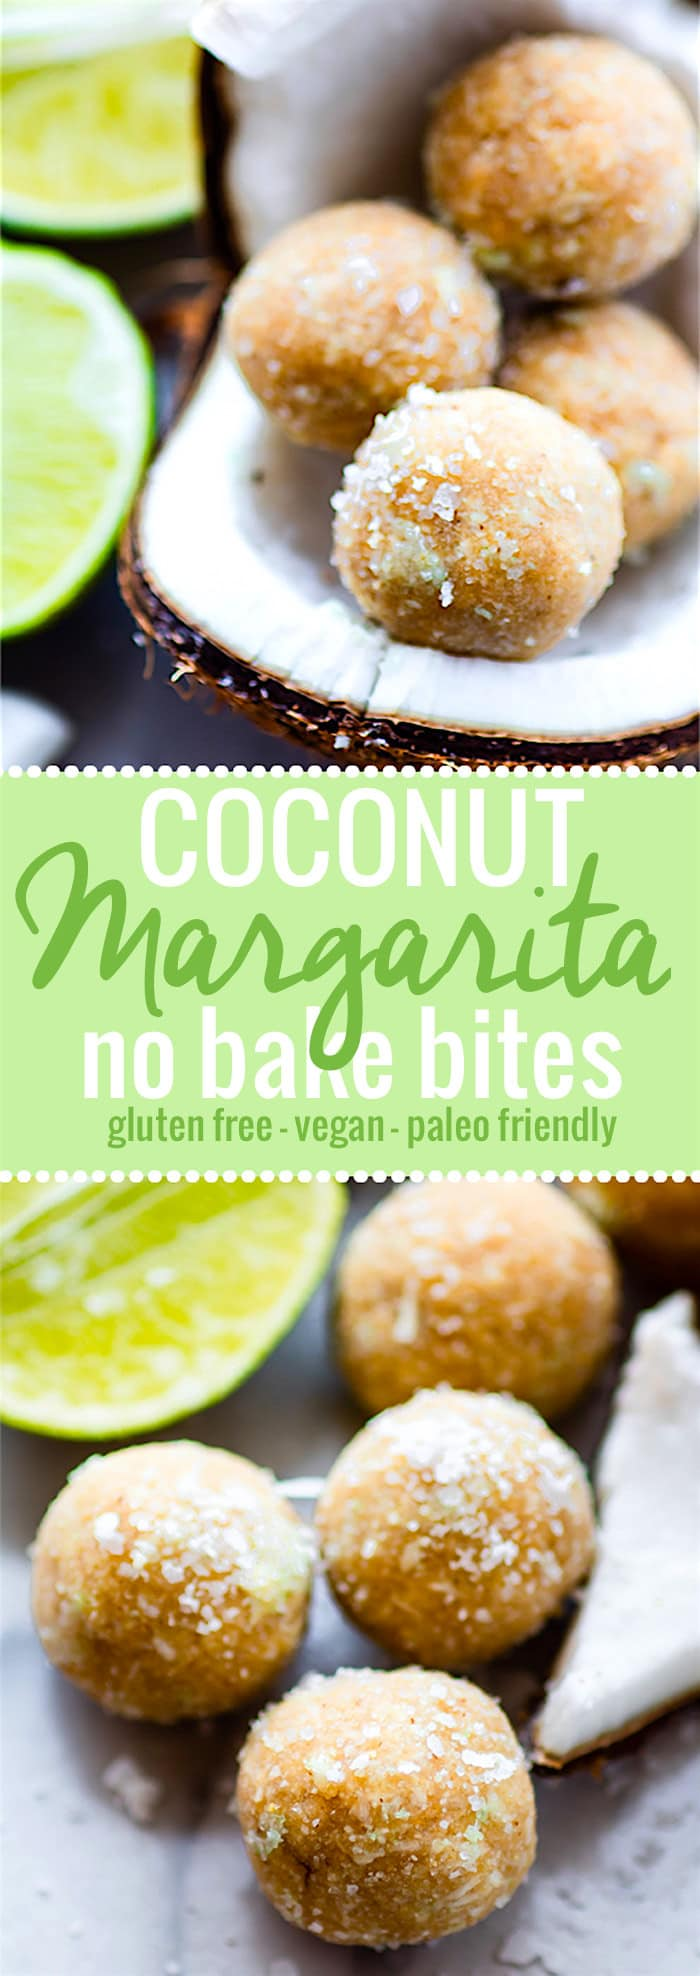 No Bake Coconut Margarita Bites! Super simple no bake coconut margarita treats in dessert bite form! These bites are naturally gluten free, paleo friendly, and vegan! Bites that actually taste like a frozen margarita with natural lime and coconut flavors. So refreshing for summer or anytime of year! @cottercrunch